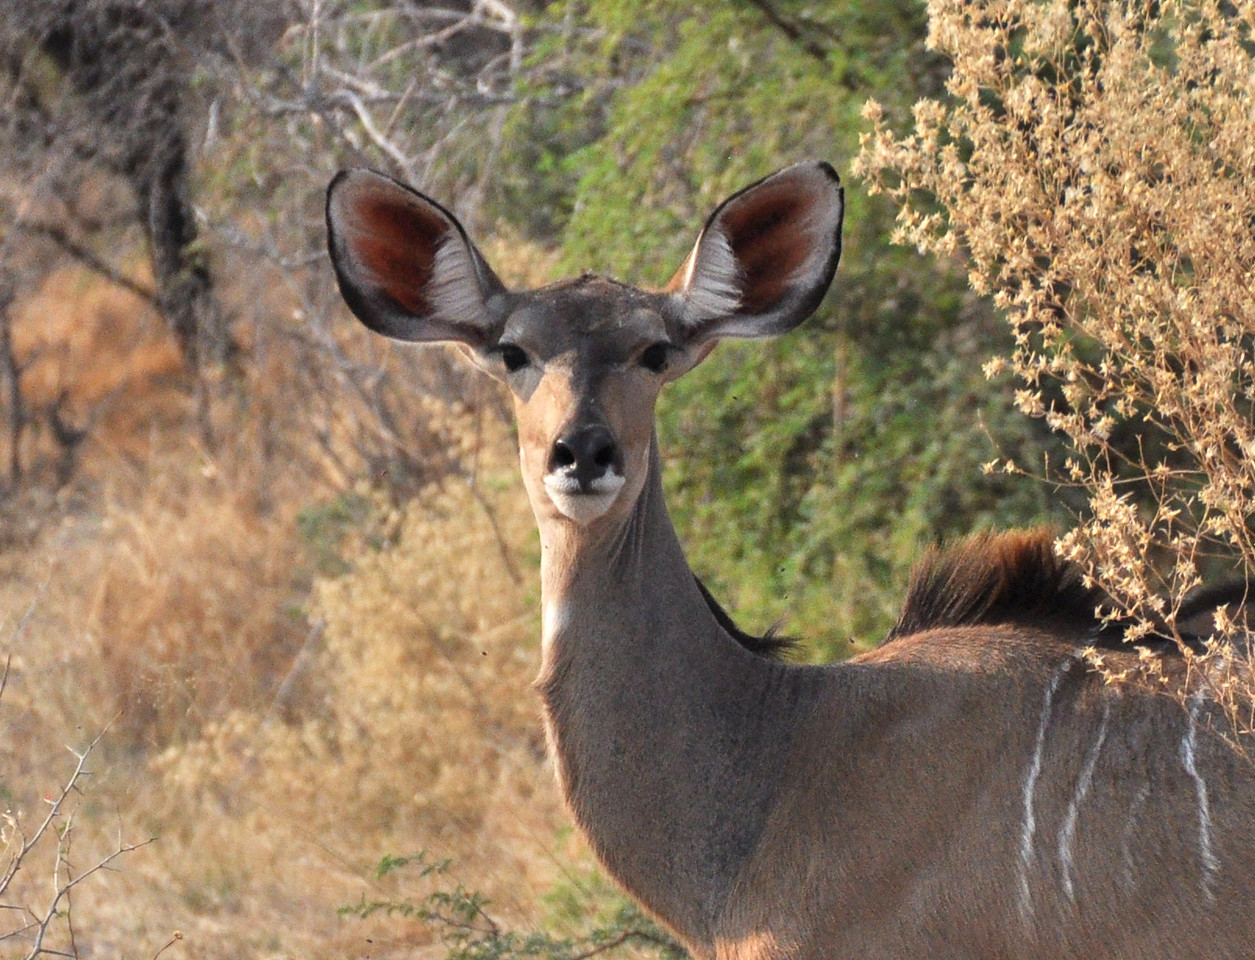 For the first year of his life, a male kudu's most prominent features are its ears – large and round.